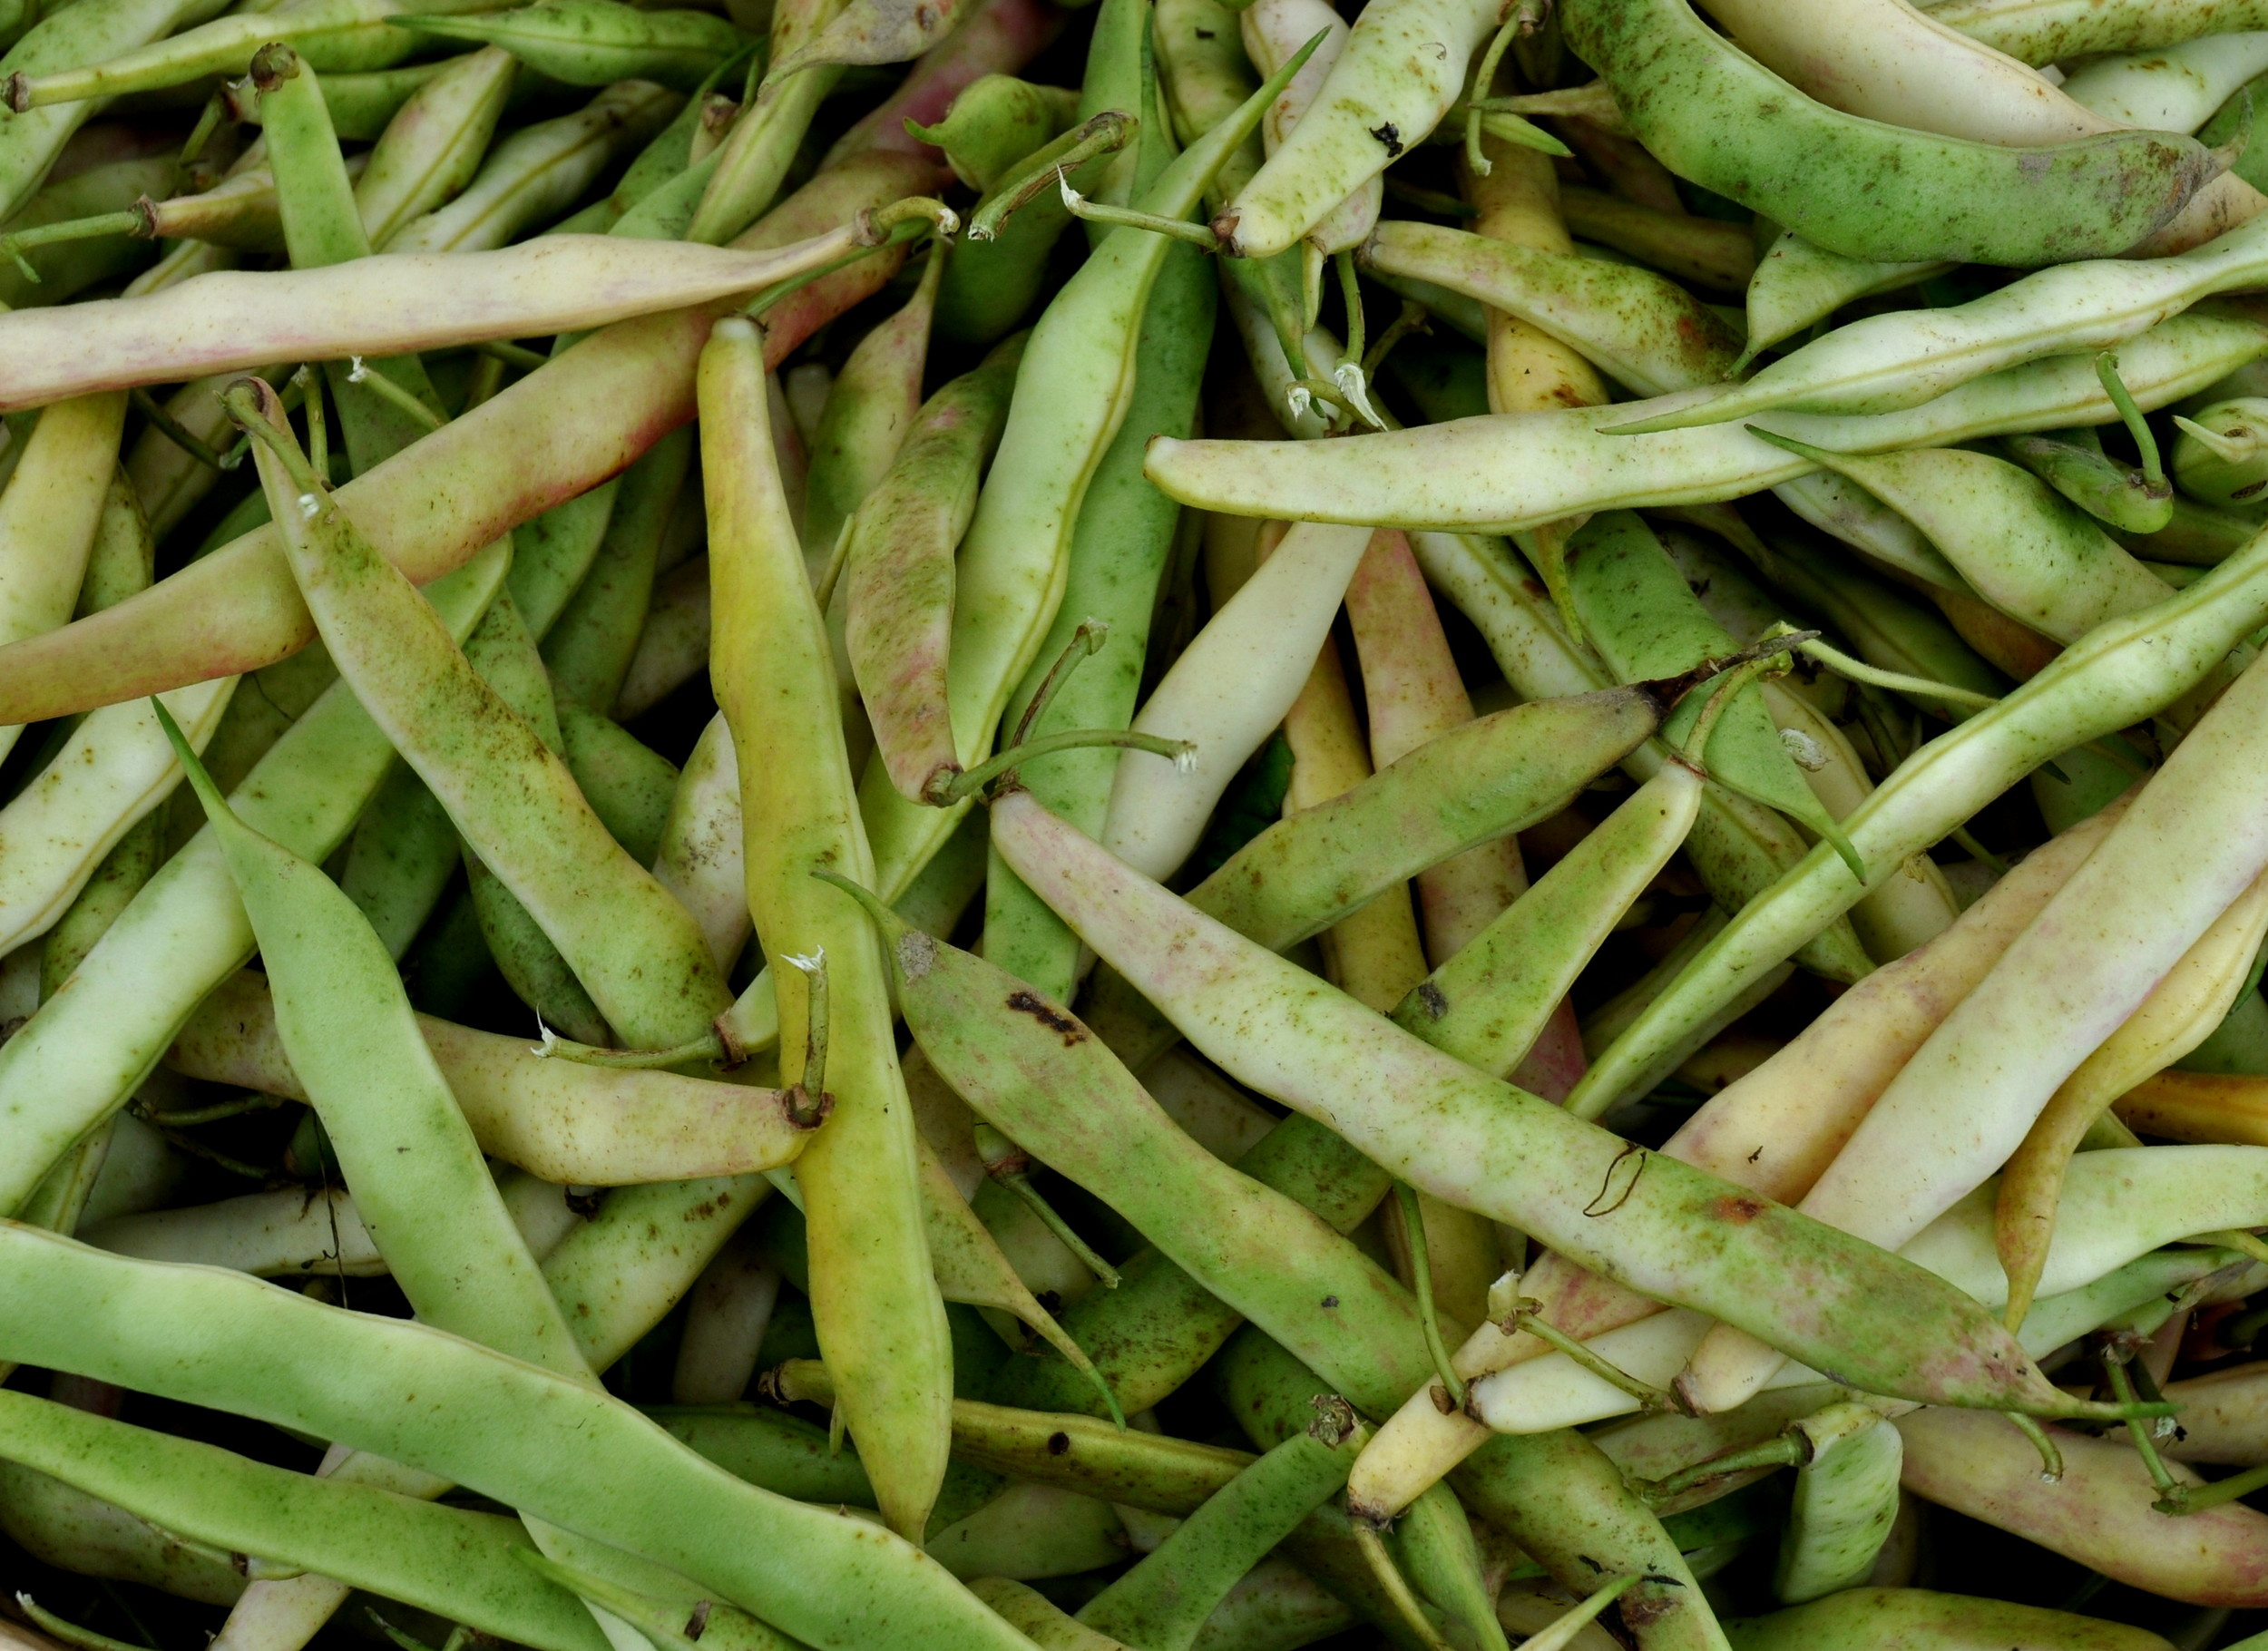 Fresh cannellini shelling beans from One Leaf Farm. Photo copyright 2013 by Zachary D. Lyons.